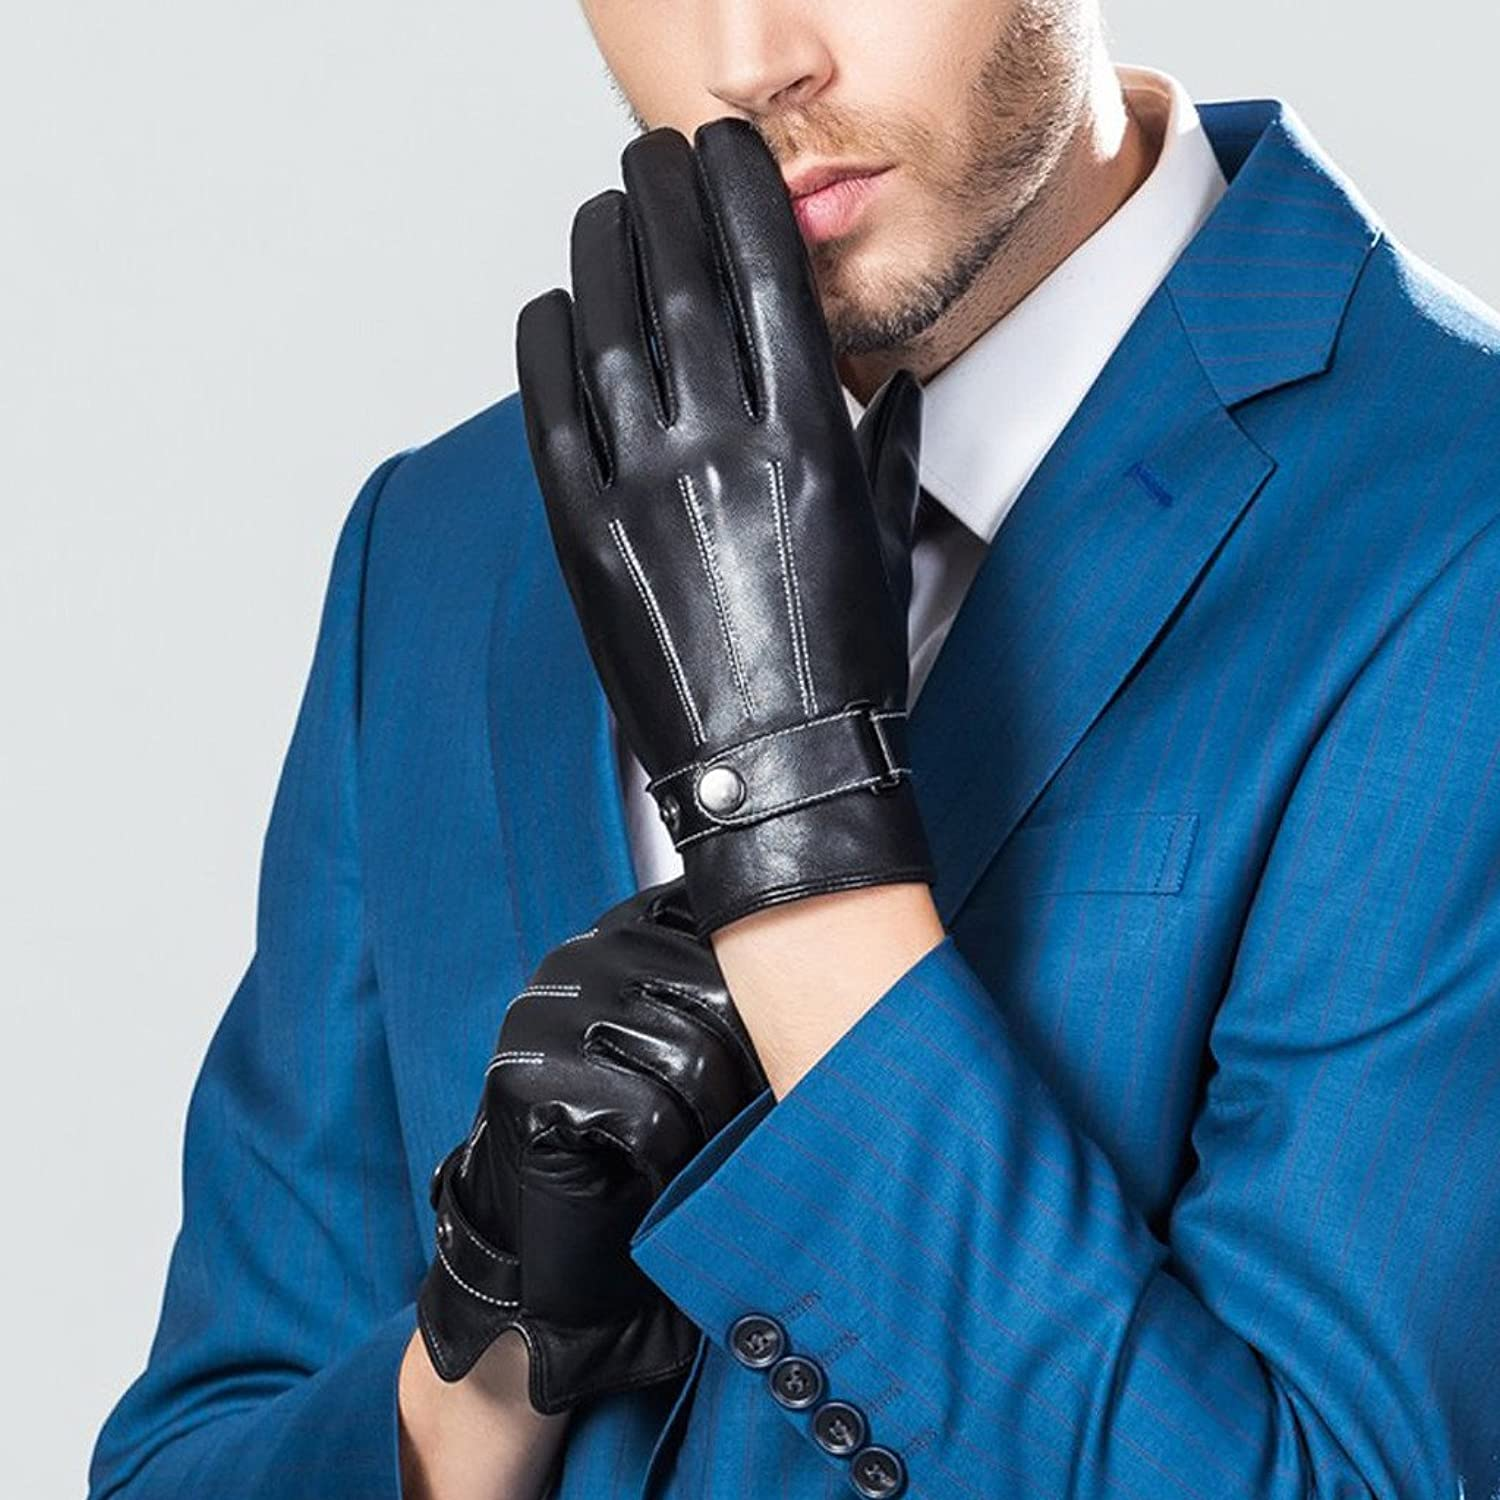 Leather gloves mens amazon - Casf Men S Warm Lambskin Genuine Leather Gloves For Men Winter Driving Black S At Amazon Men S Clothing Store